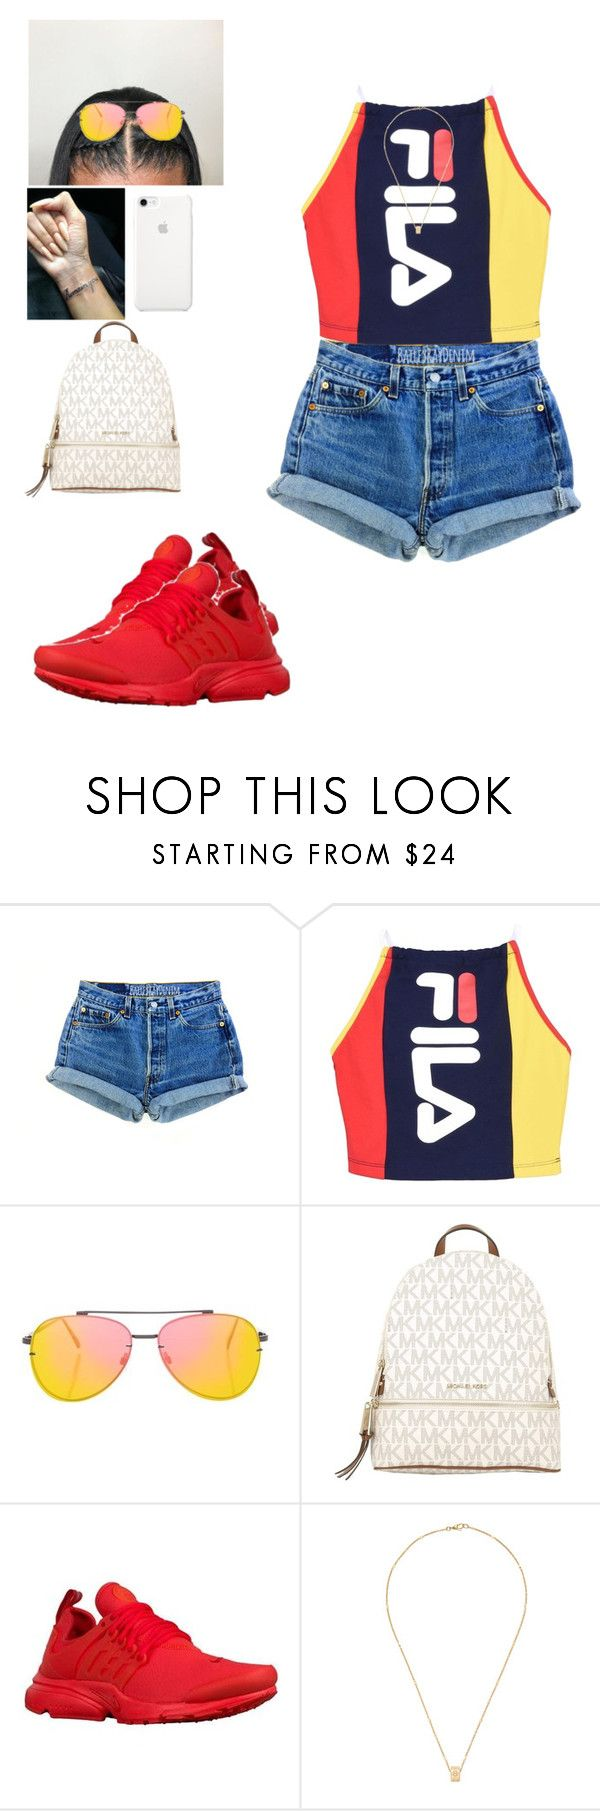 """""""Untitled #107"""" by mcoats67 ❤ liked on Polyvore featuring Fila, Topshop, MICHAEL Michael Kors and Gucci"""